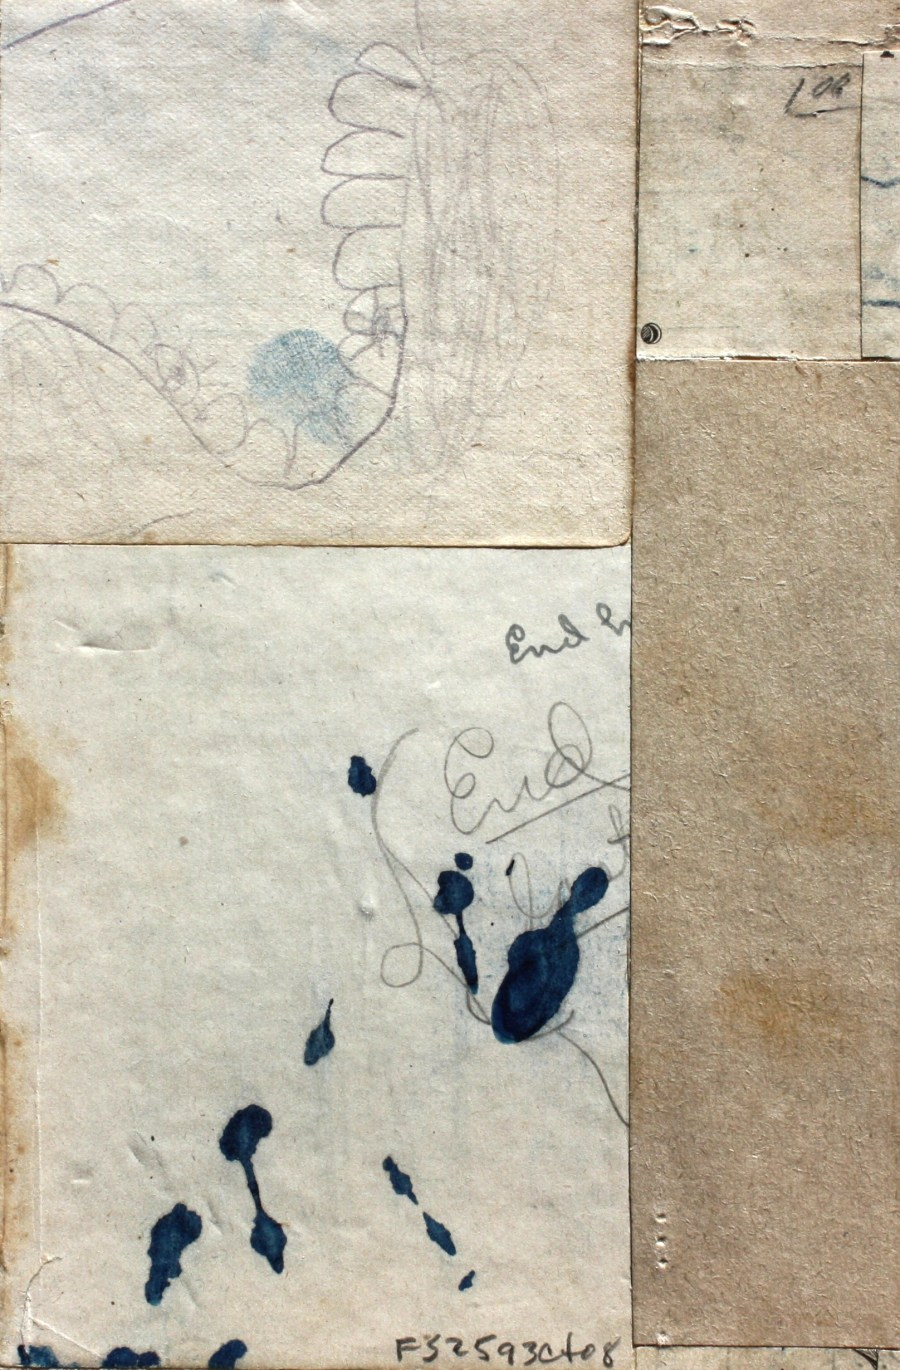 Fusion Series #2593 - 2008 - collage with found paper - 6x4 inches mounted on watercolor paper